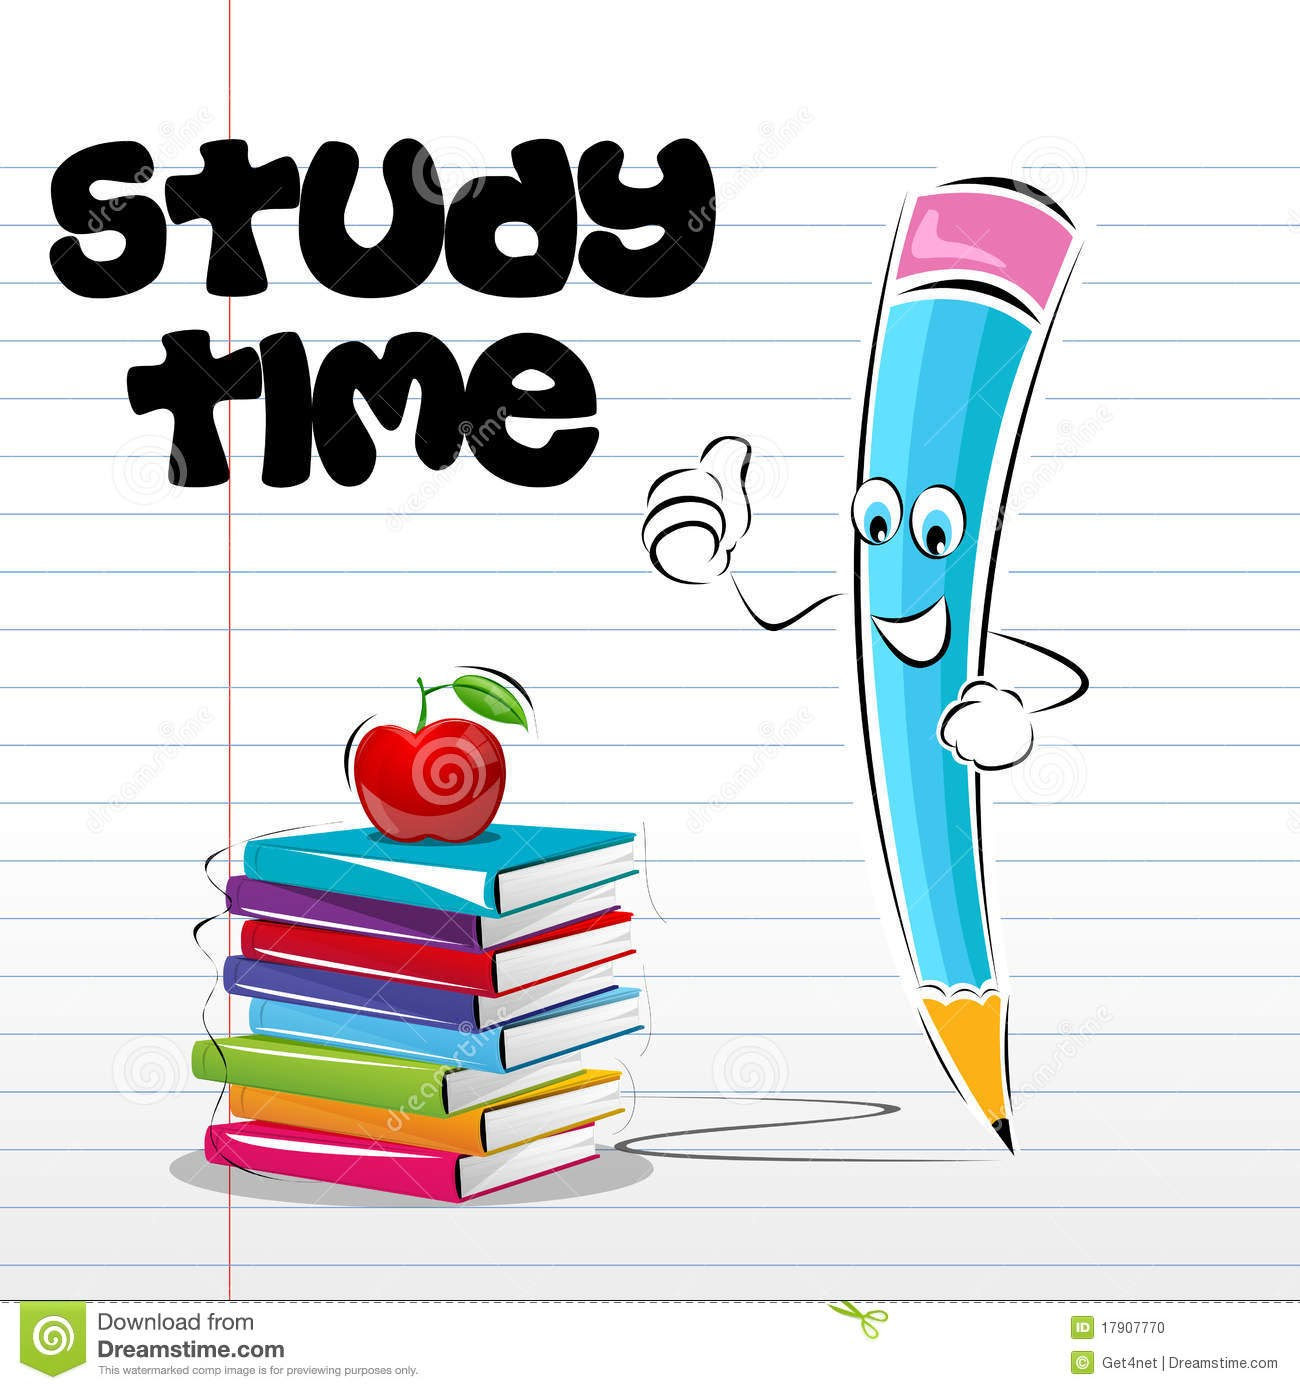 Exam free download best. Writer clipart question paper